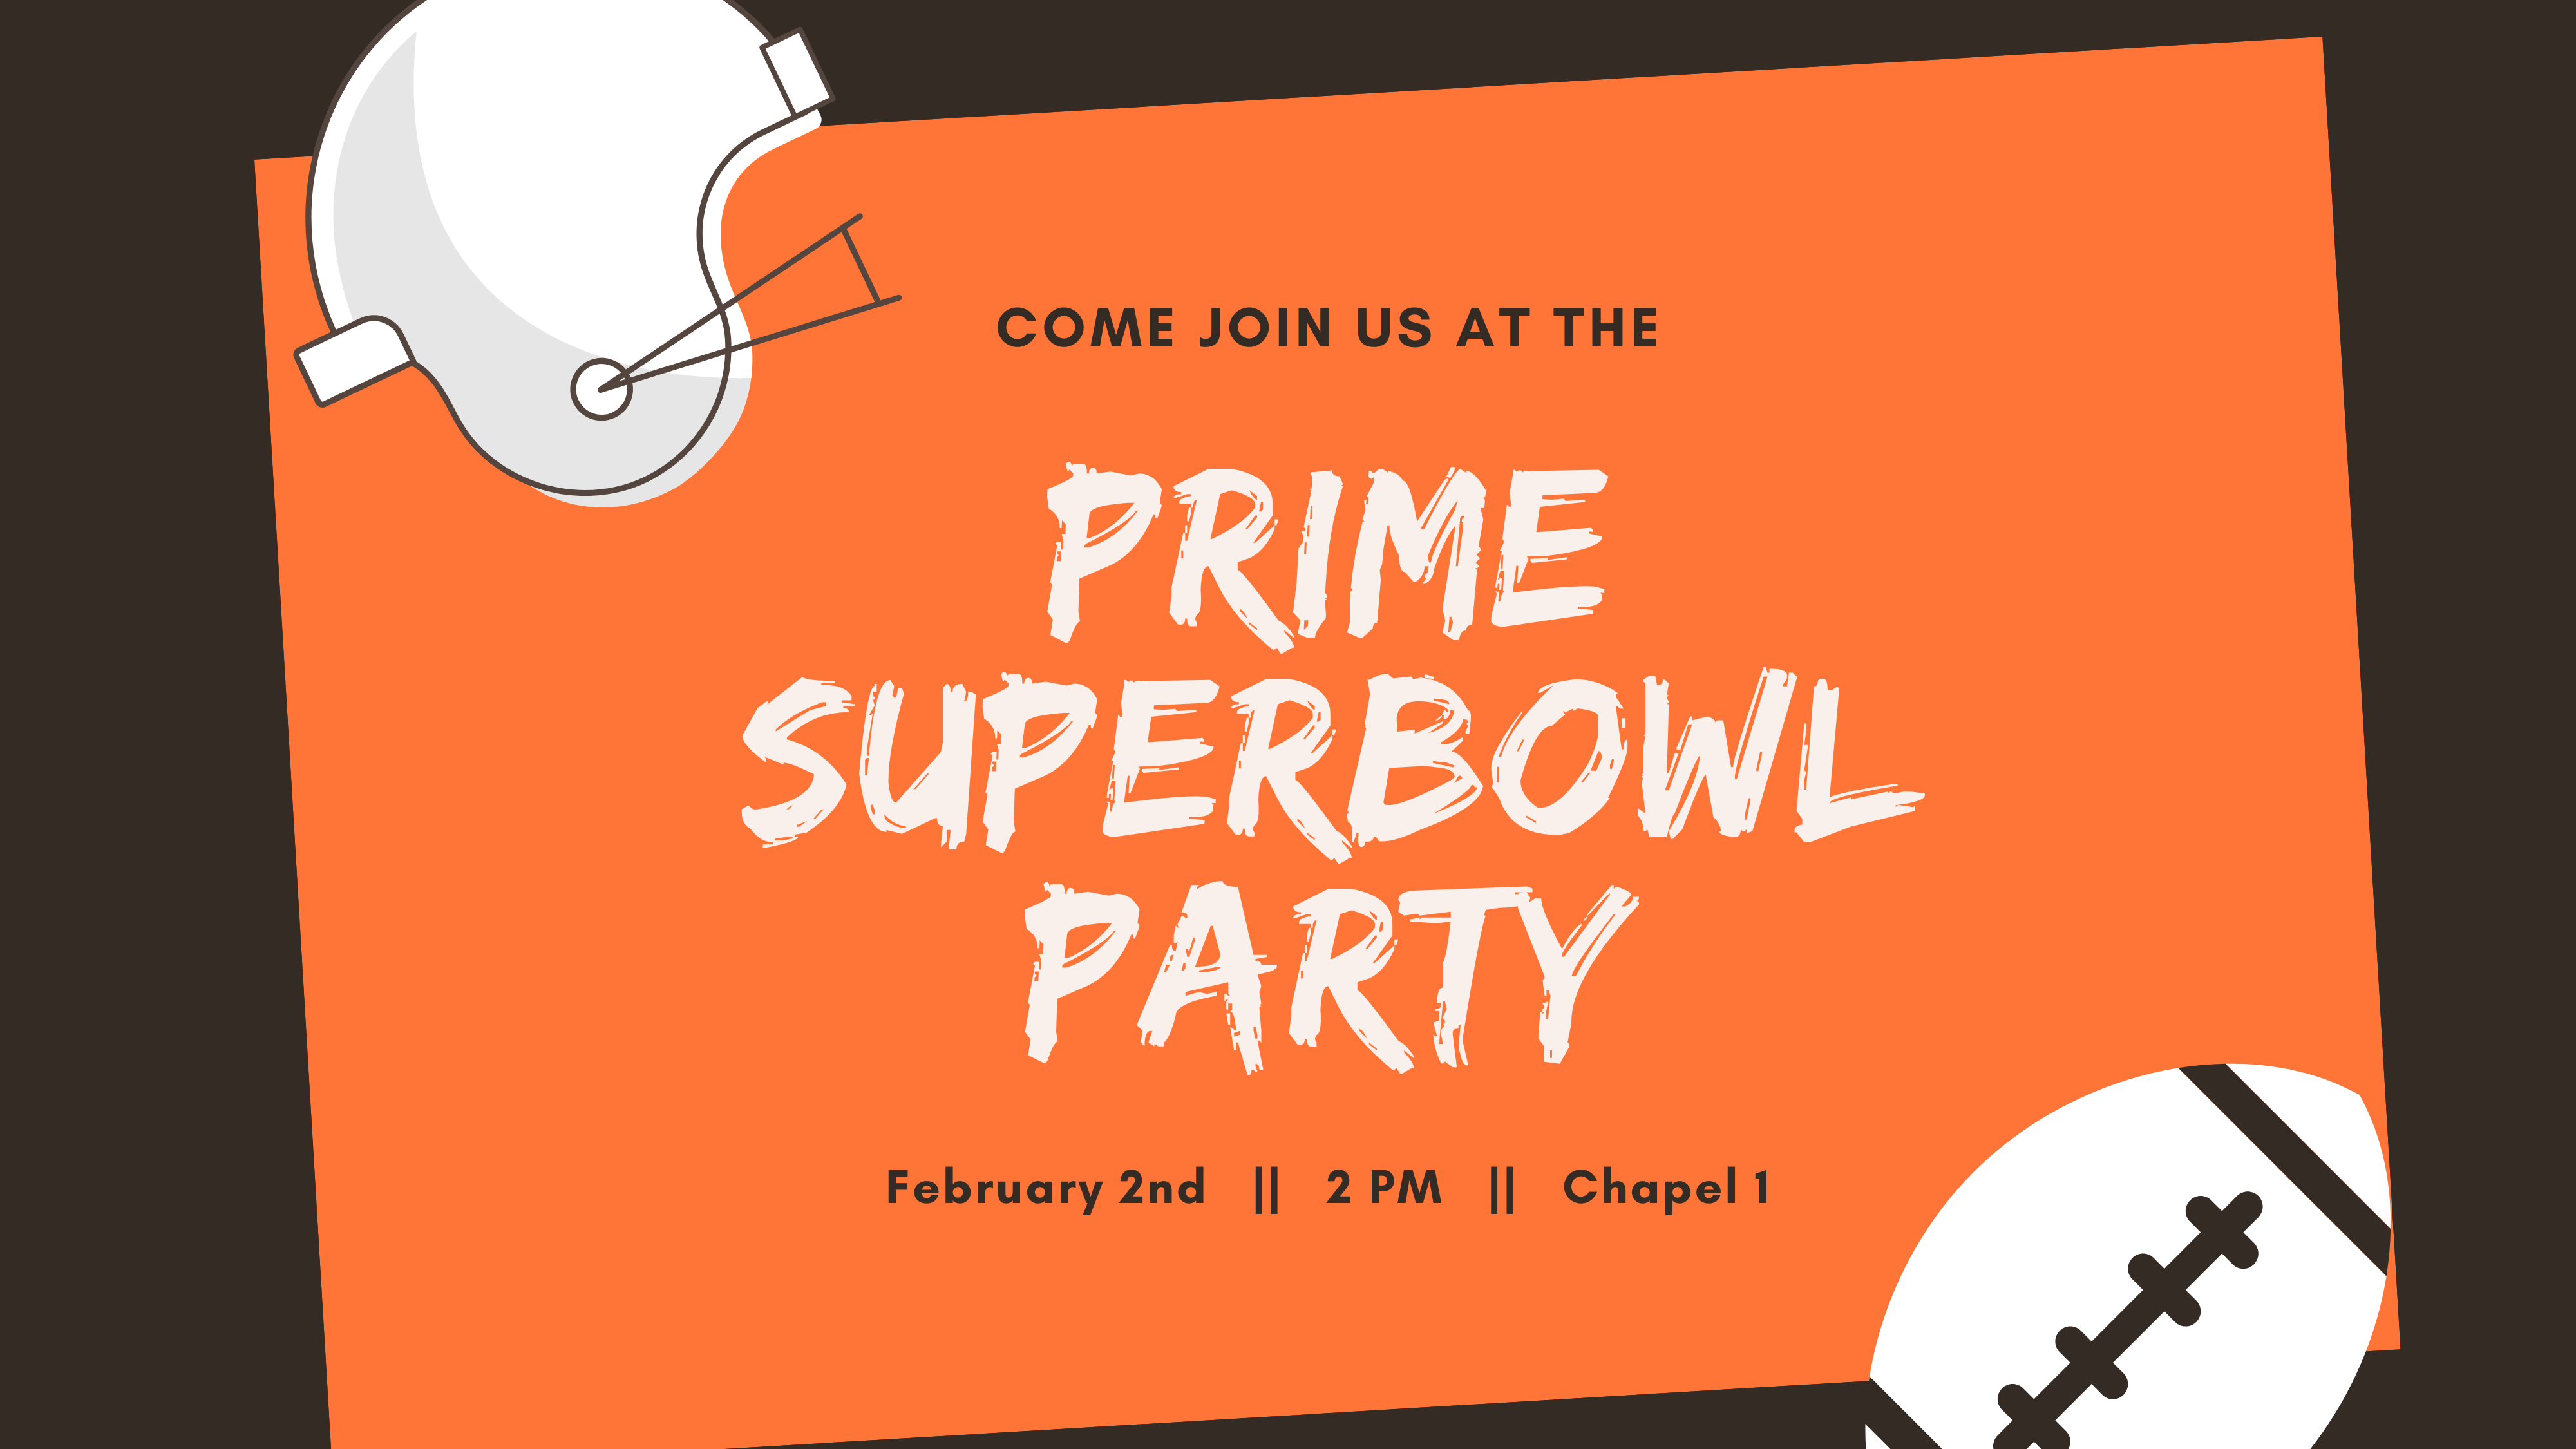 Prime Superbowl Party